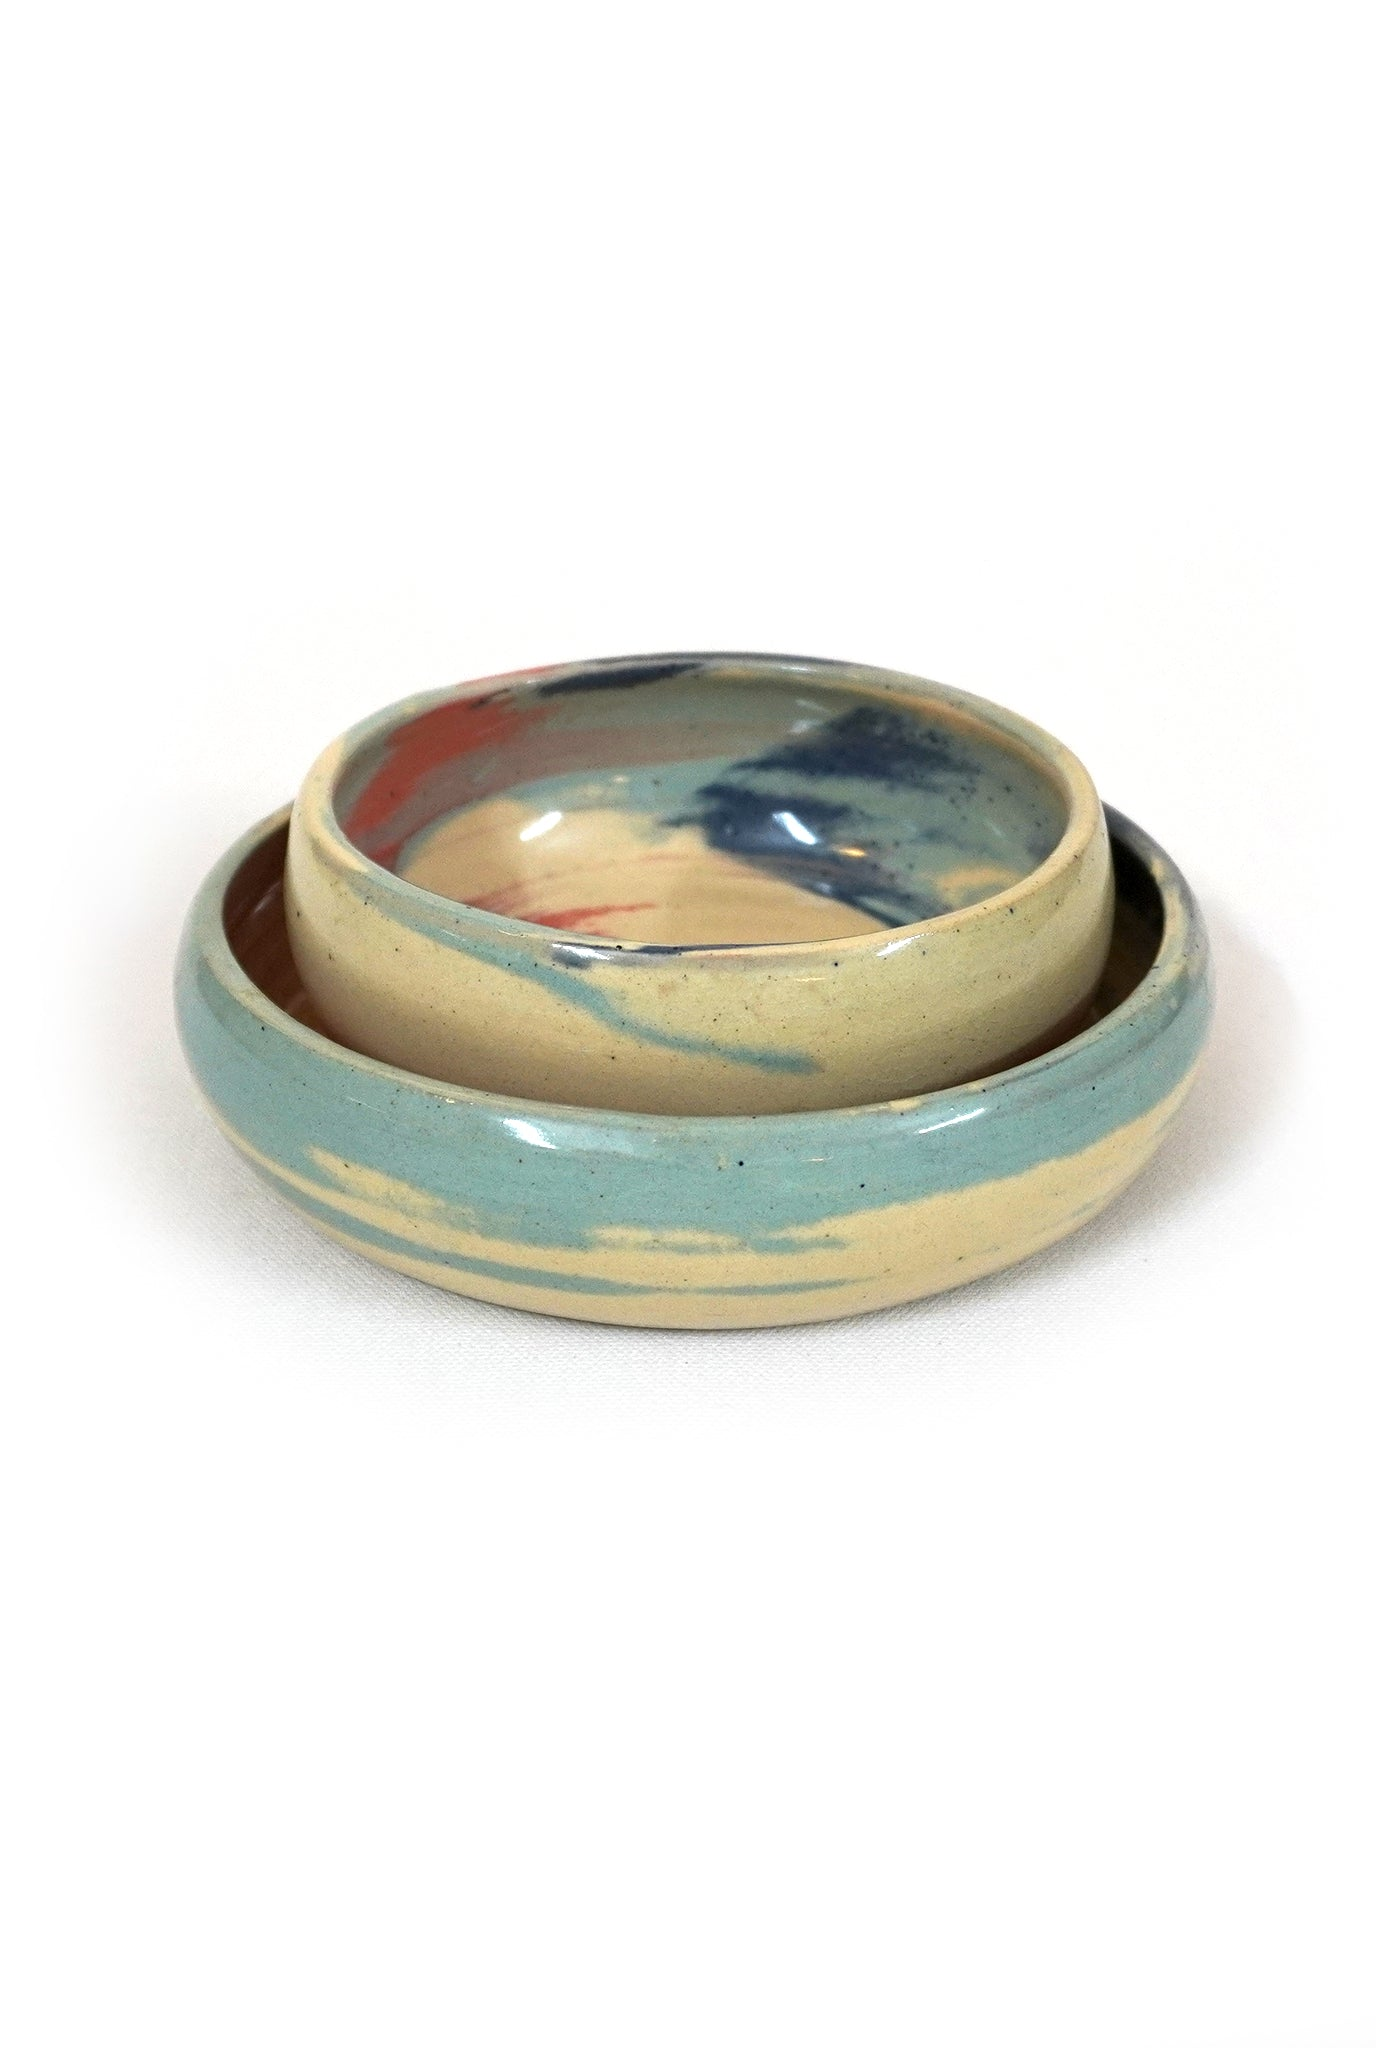 NERIKOMI BOWL - SET OF 2